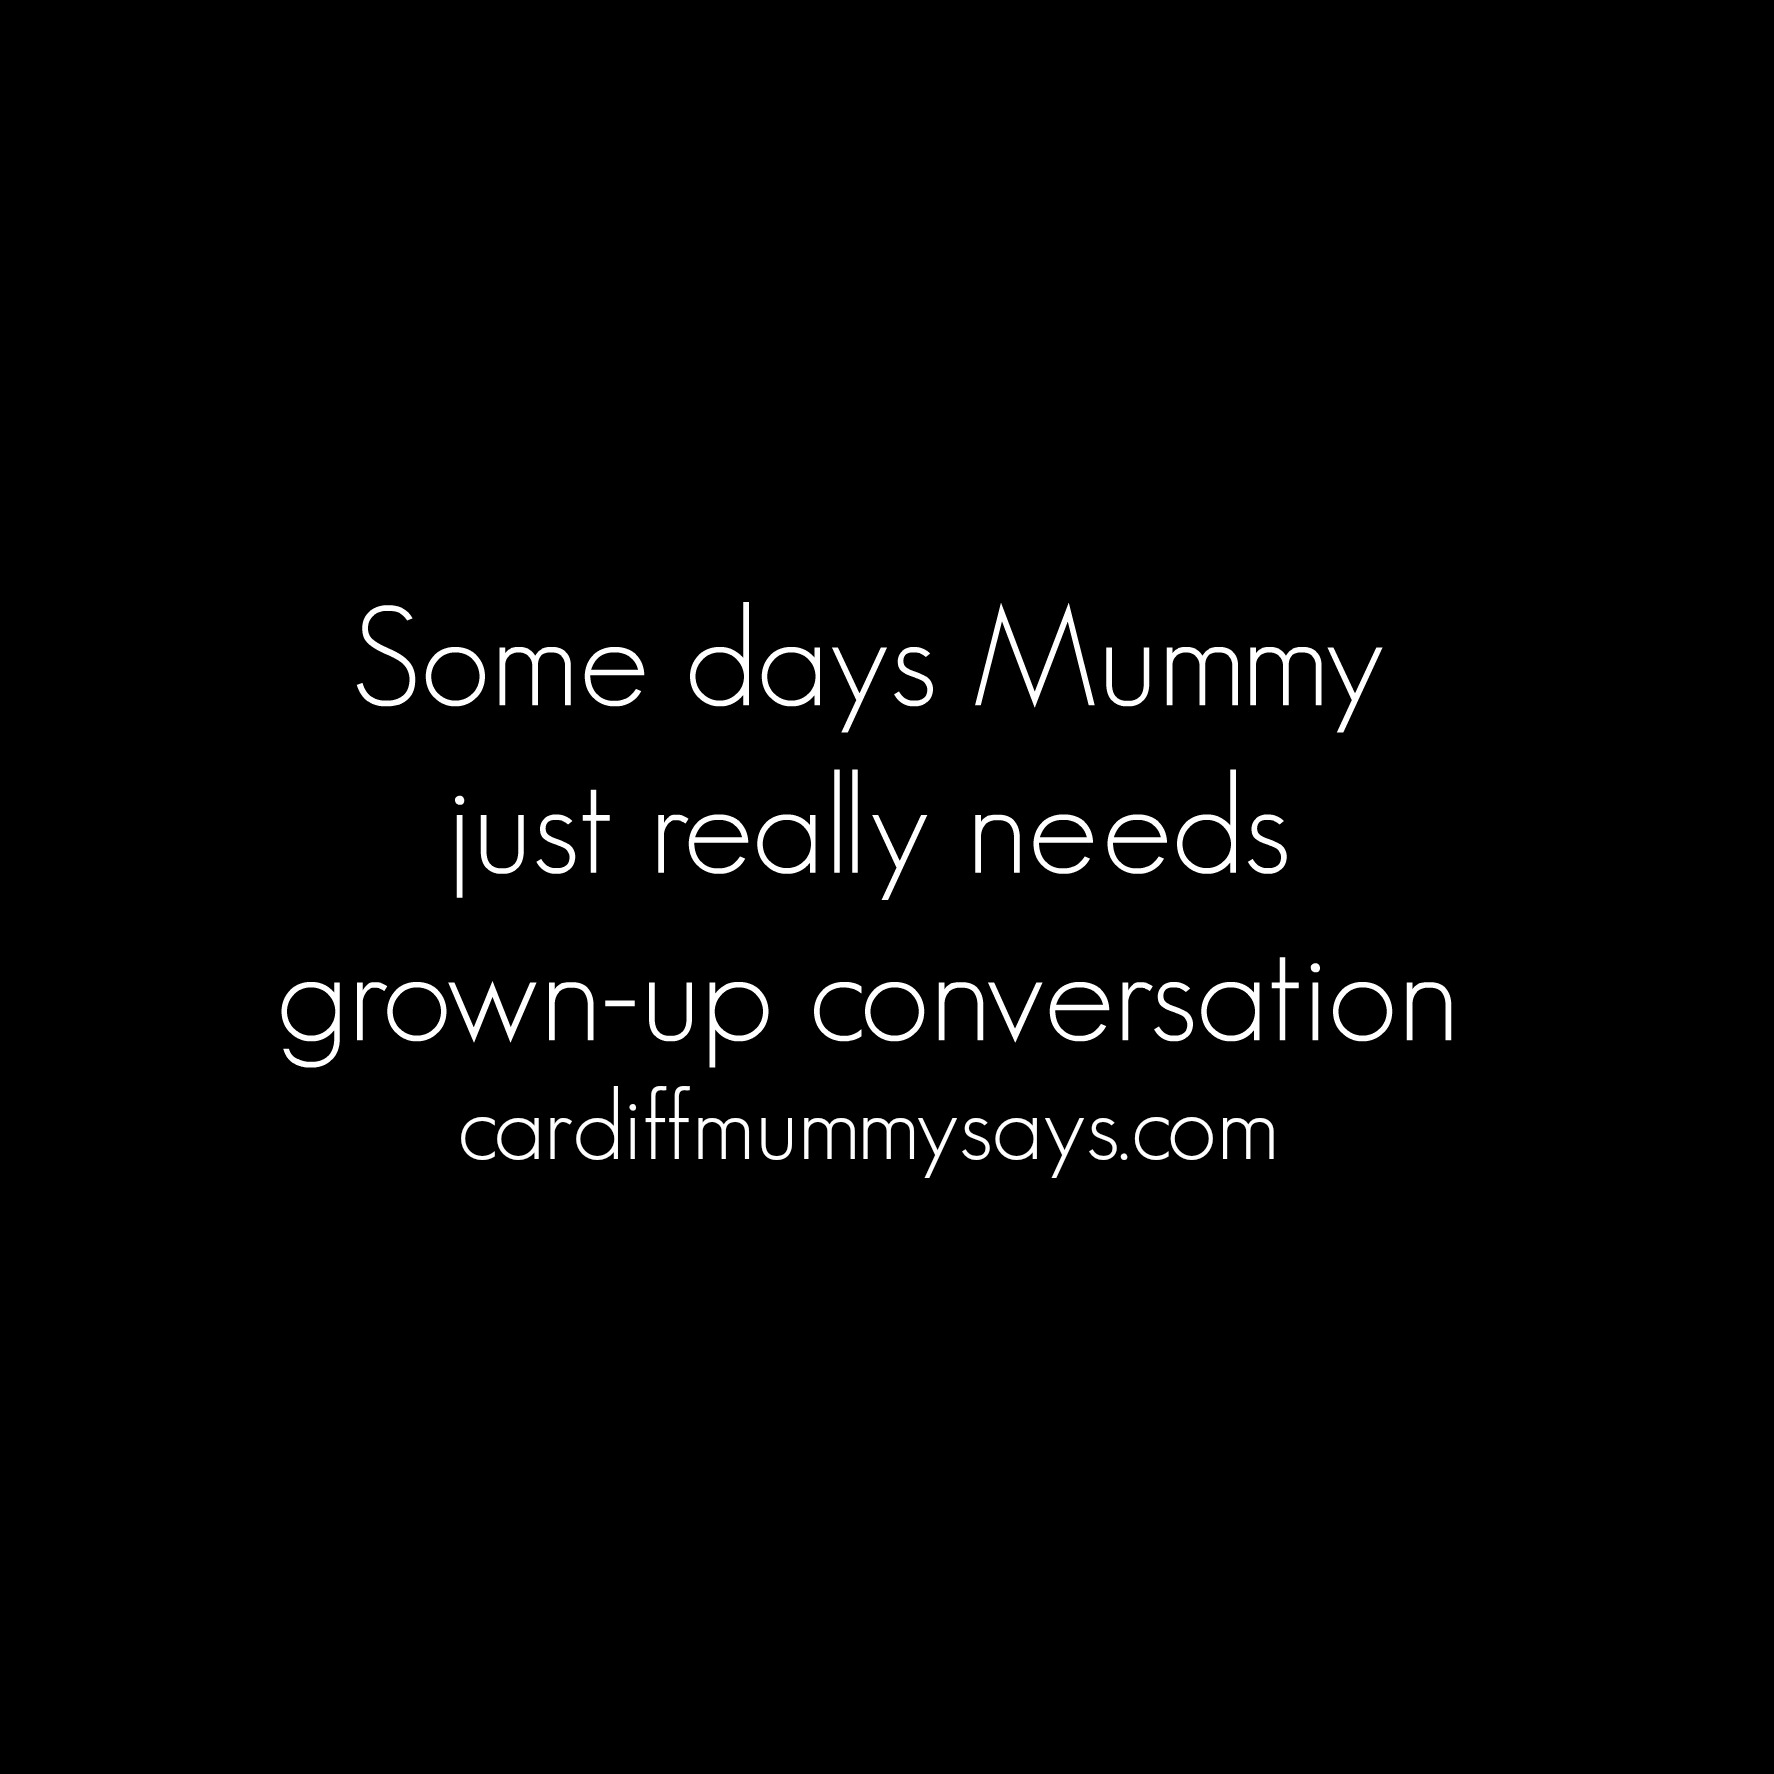 14 04 2016 Sometimes Mummy needs grown-up conversation Image